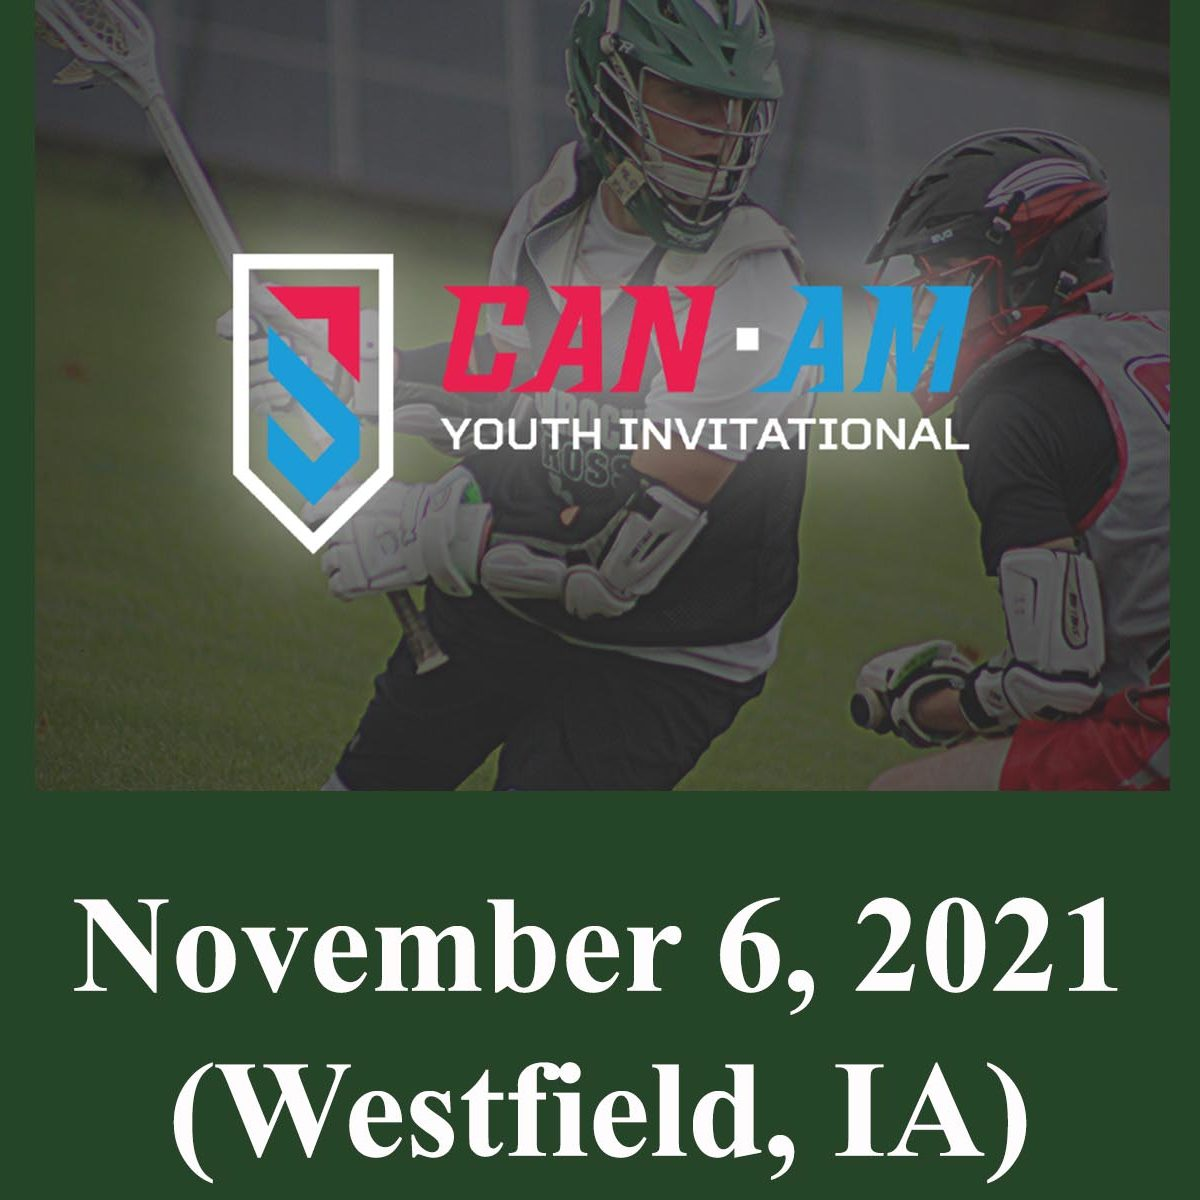 2021 Can AM Youth